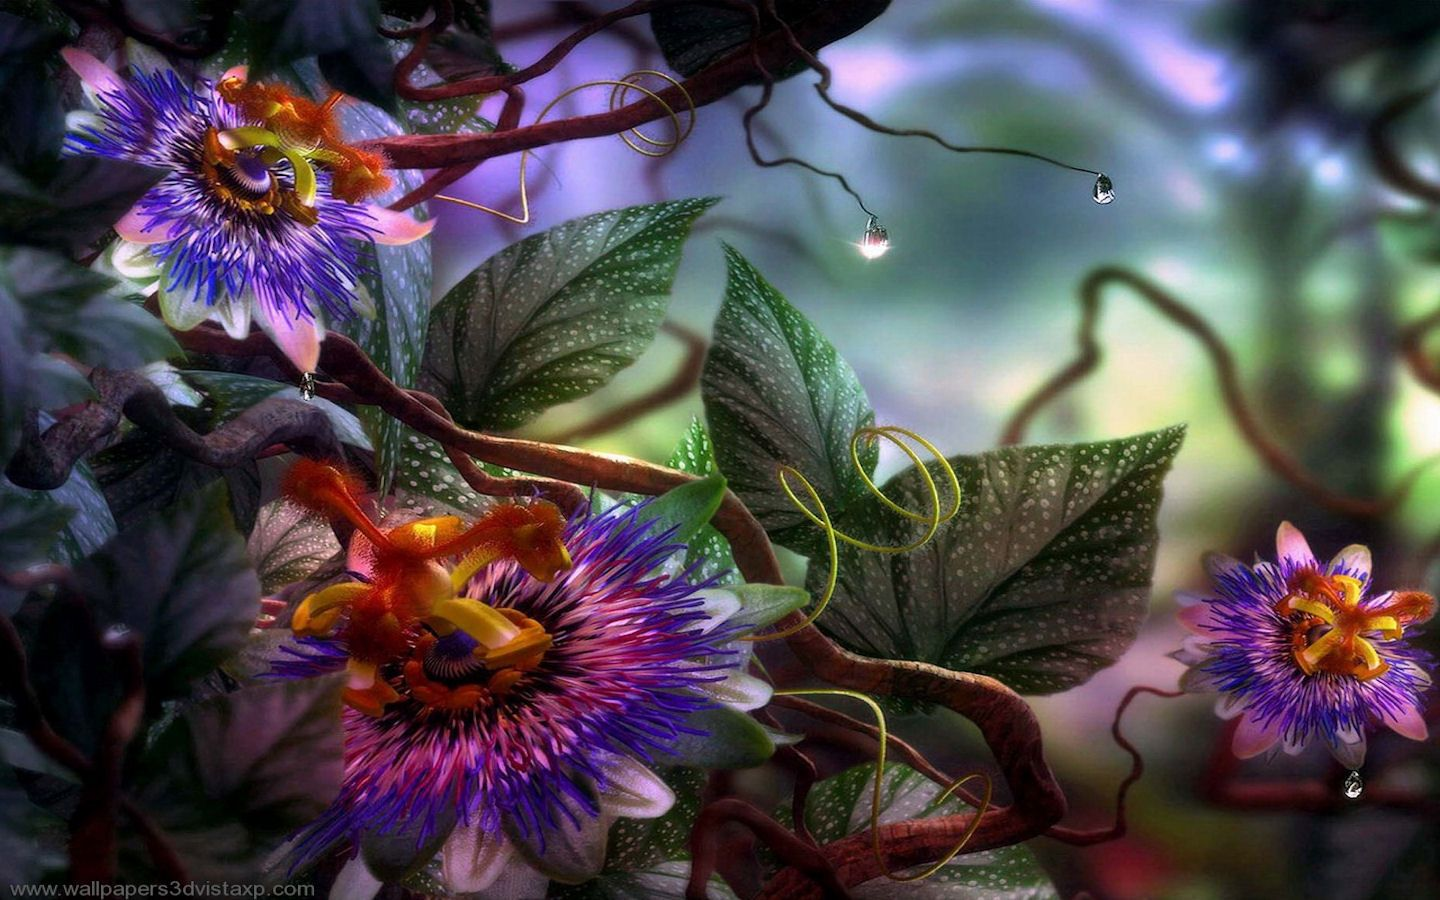 Flower Garden Wallpaper Background full hd fantasy garden widescreen high definition wallpaper